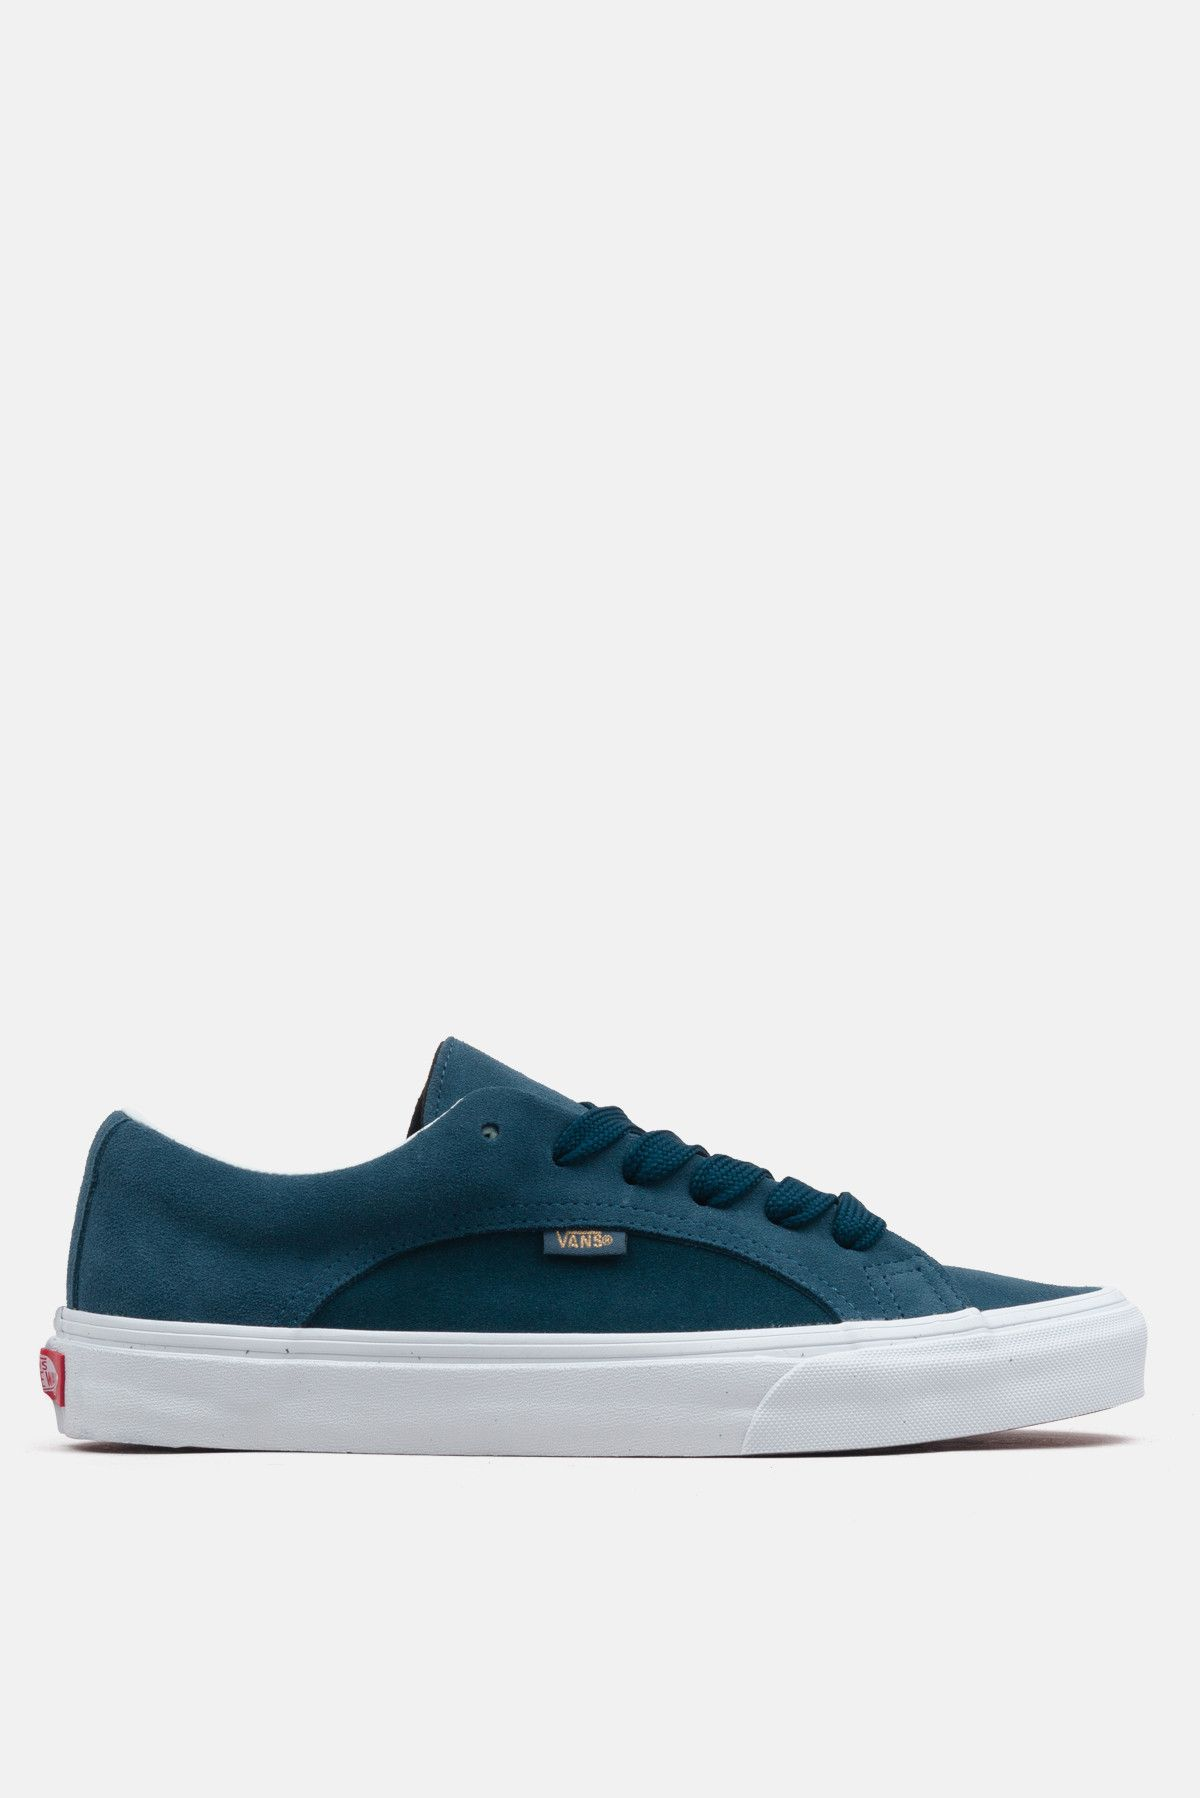 Vans UA Lampin Shoes available from Priory c11d00188